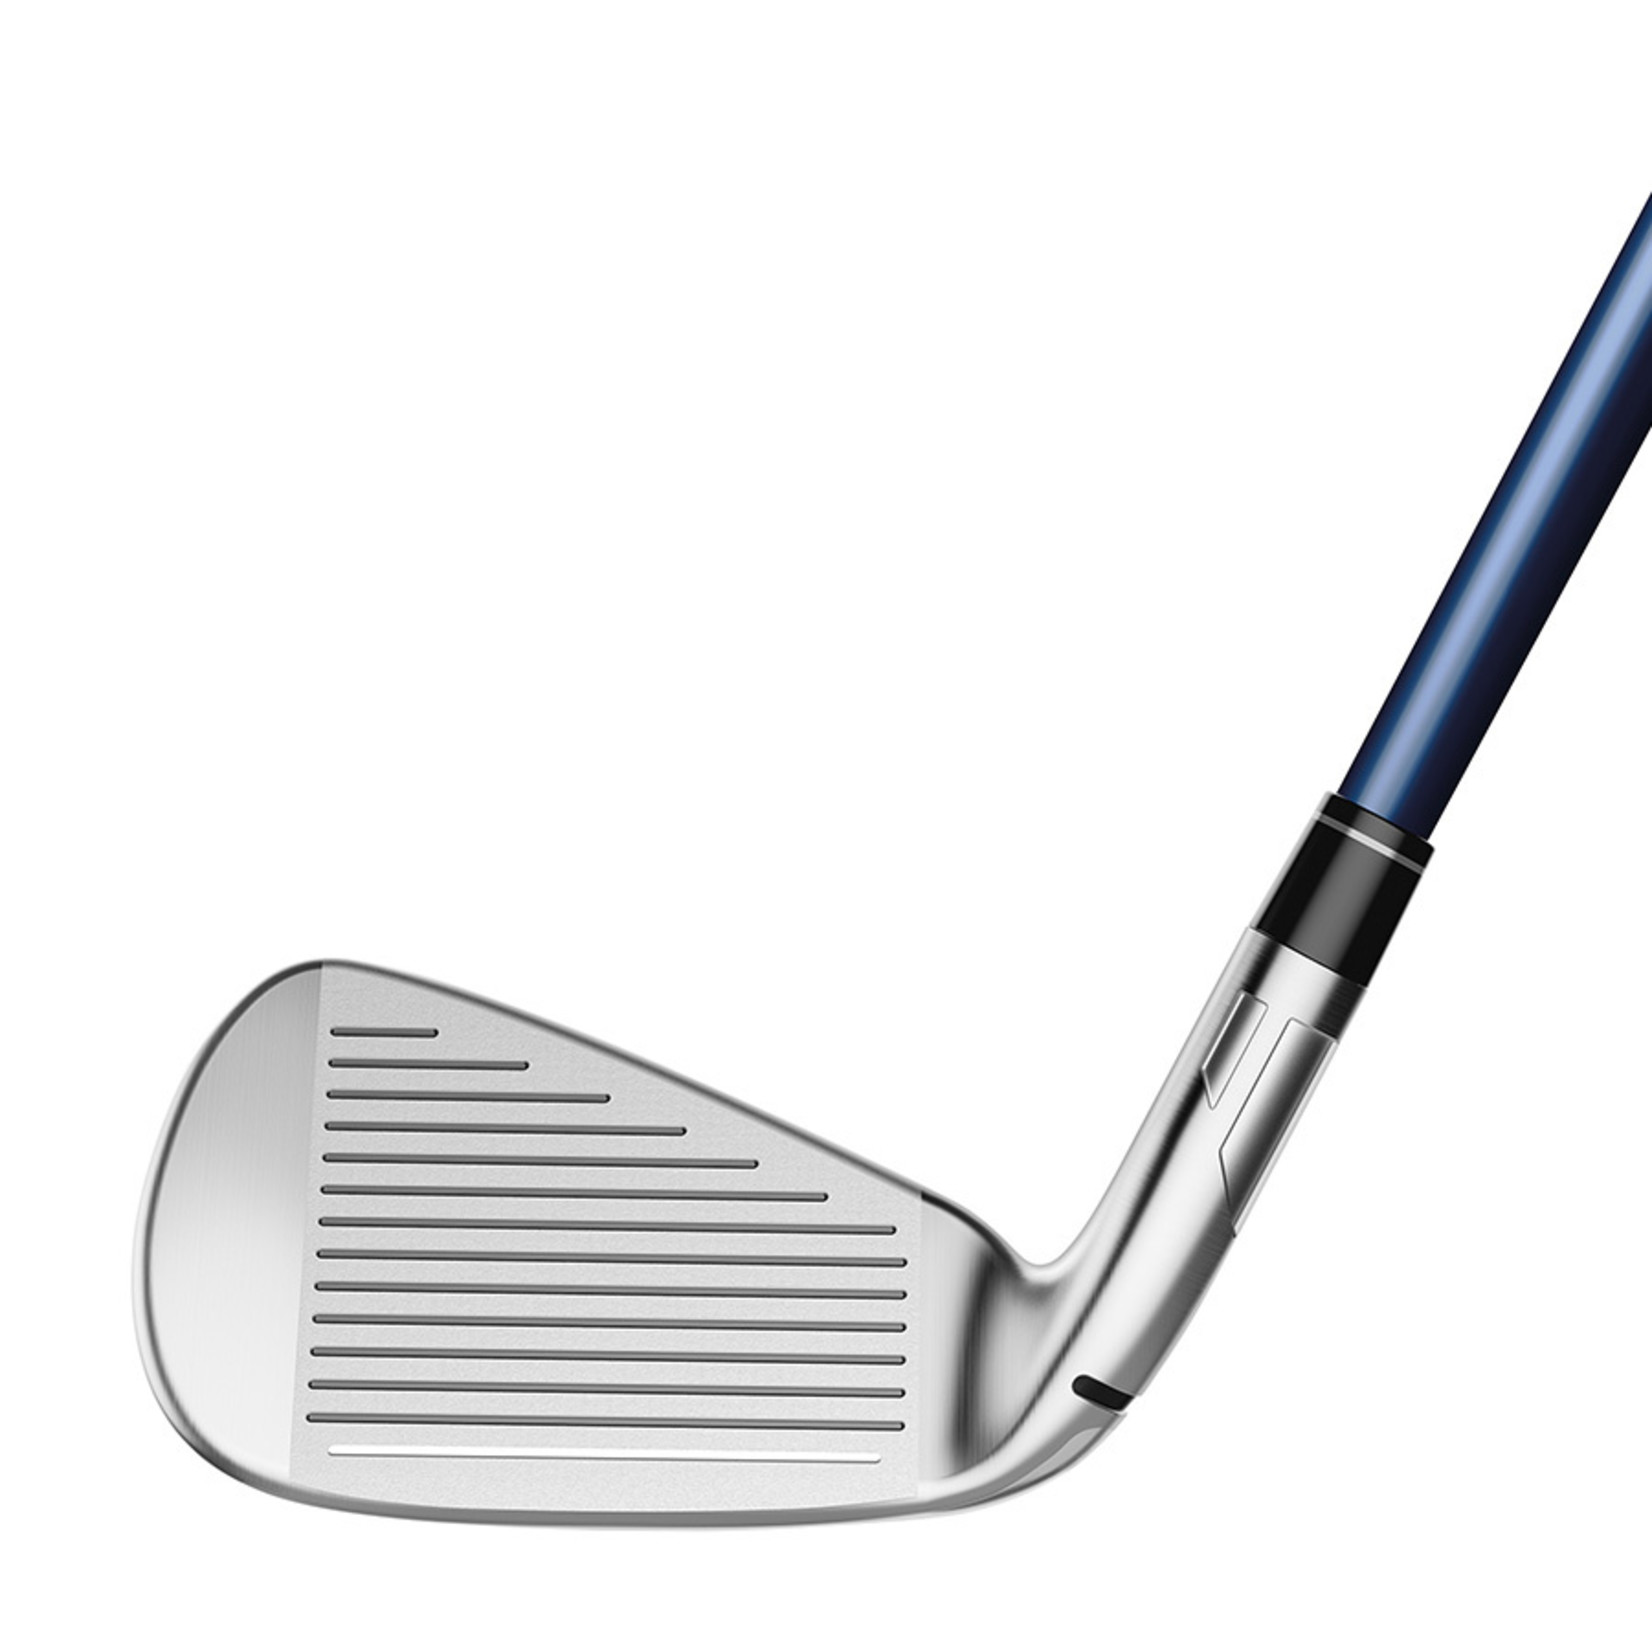 TaylorMade SIM2 Max OS Irons 7pc. - Graphite Shafts